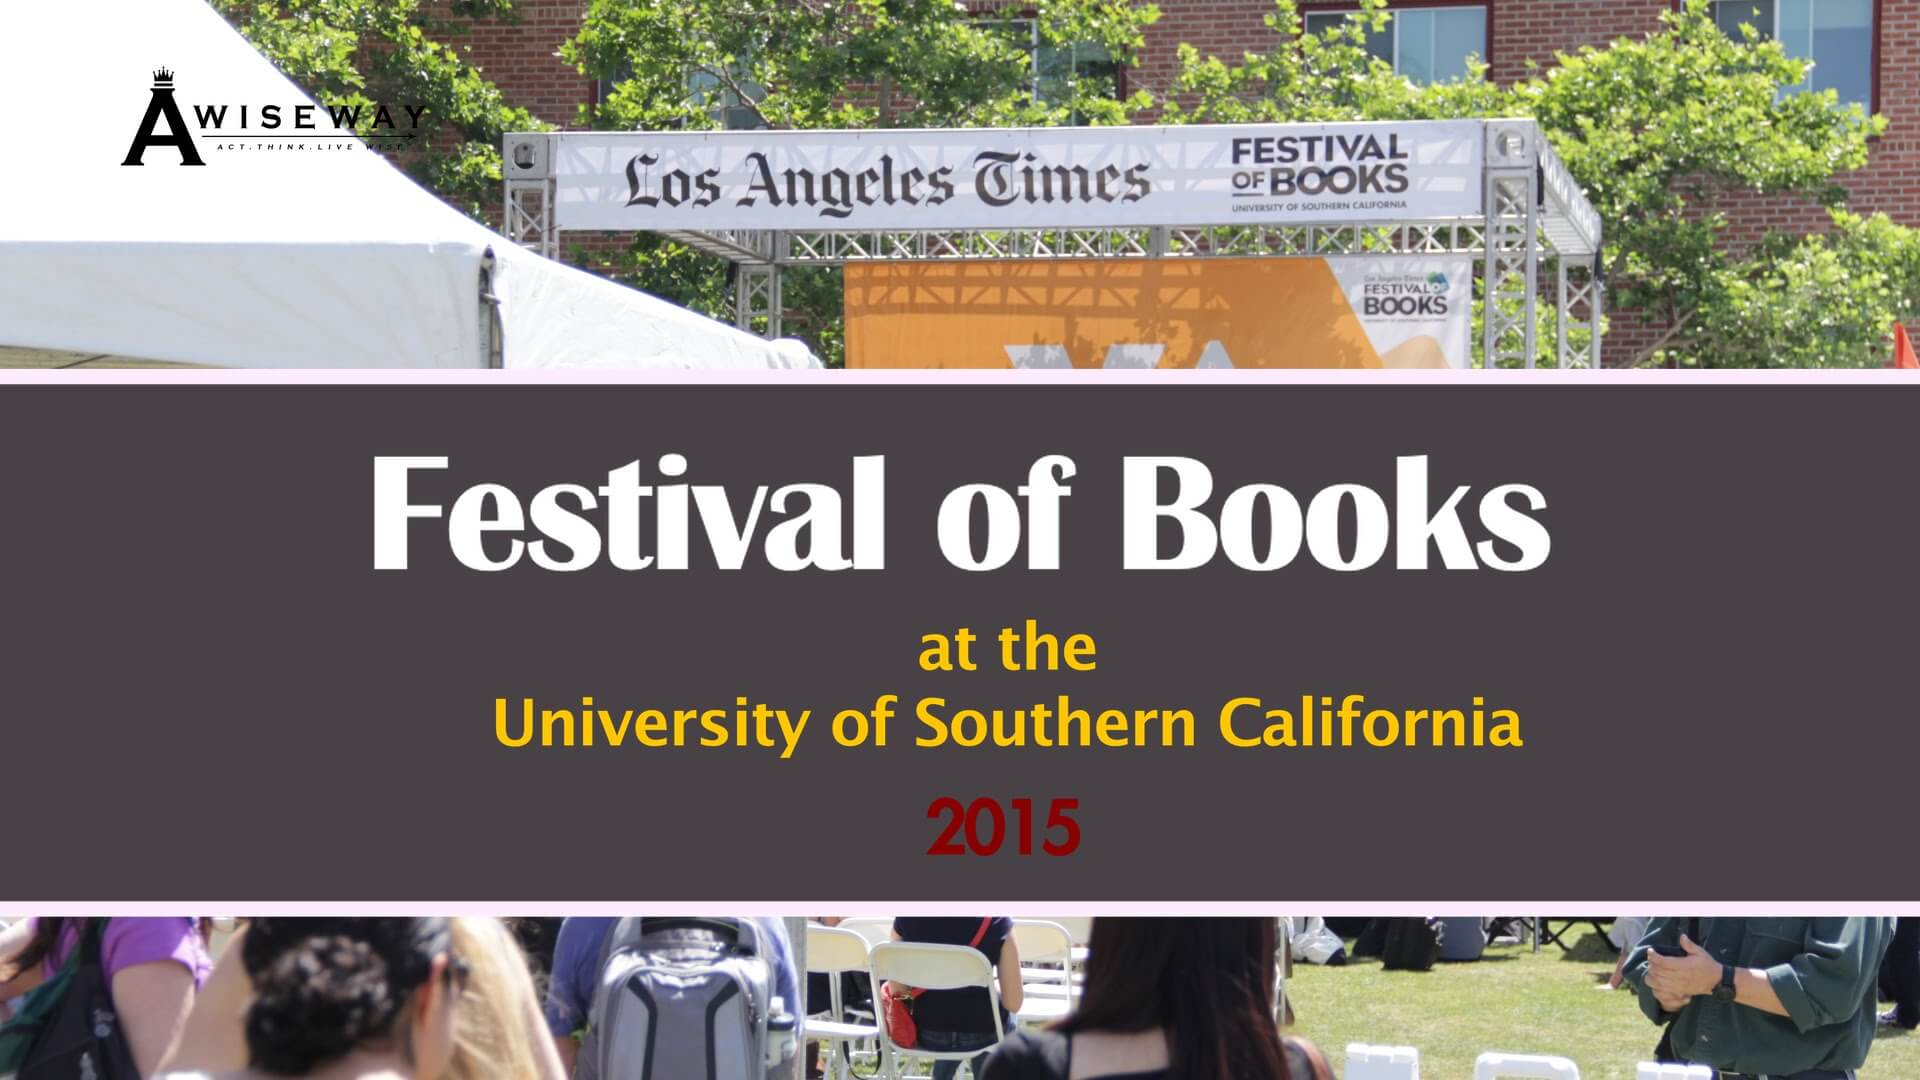 Festival of Books 2015 | A Wise Way (Part 2)